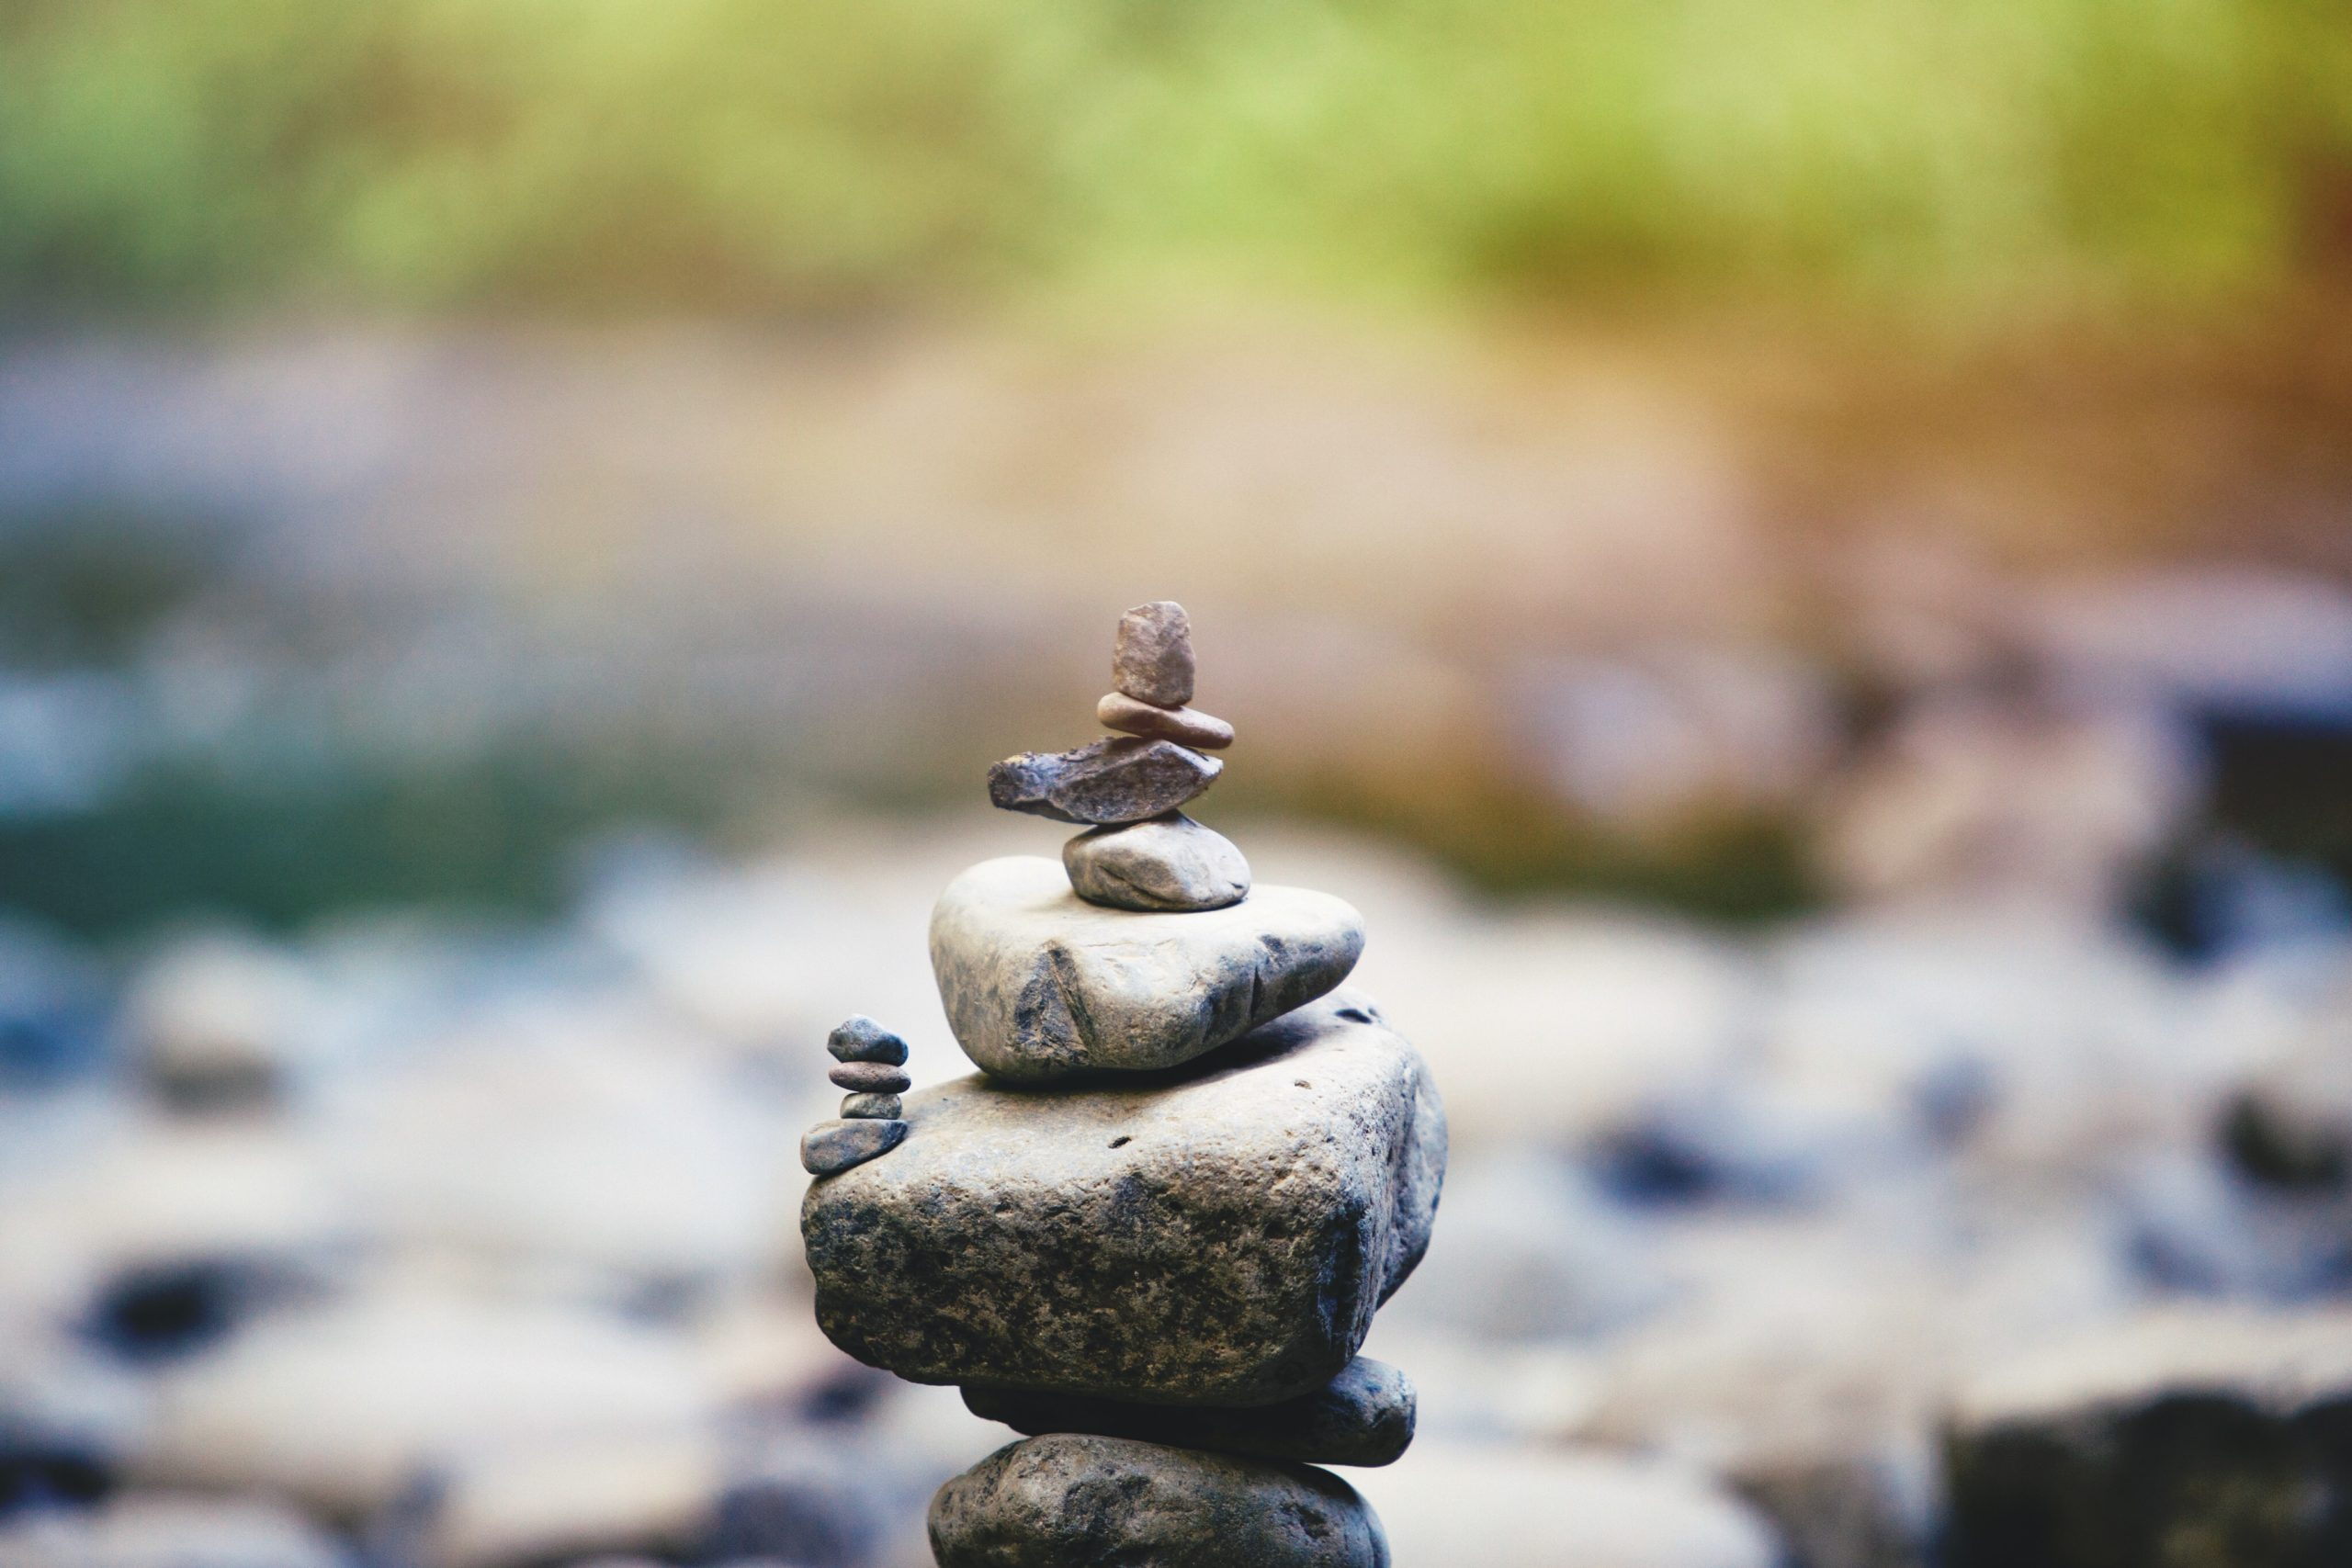 stacked rocks featured image for Bitcoin